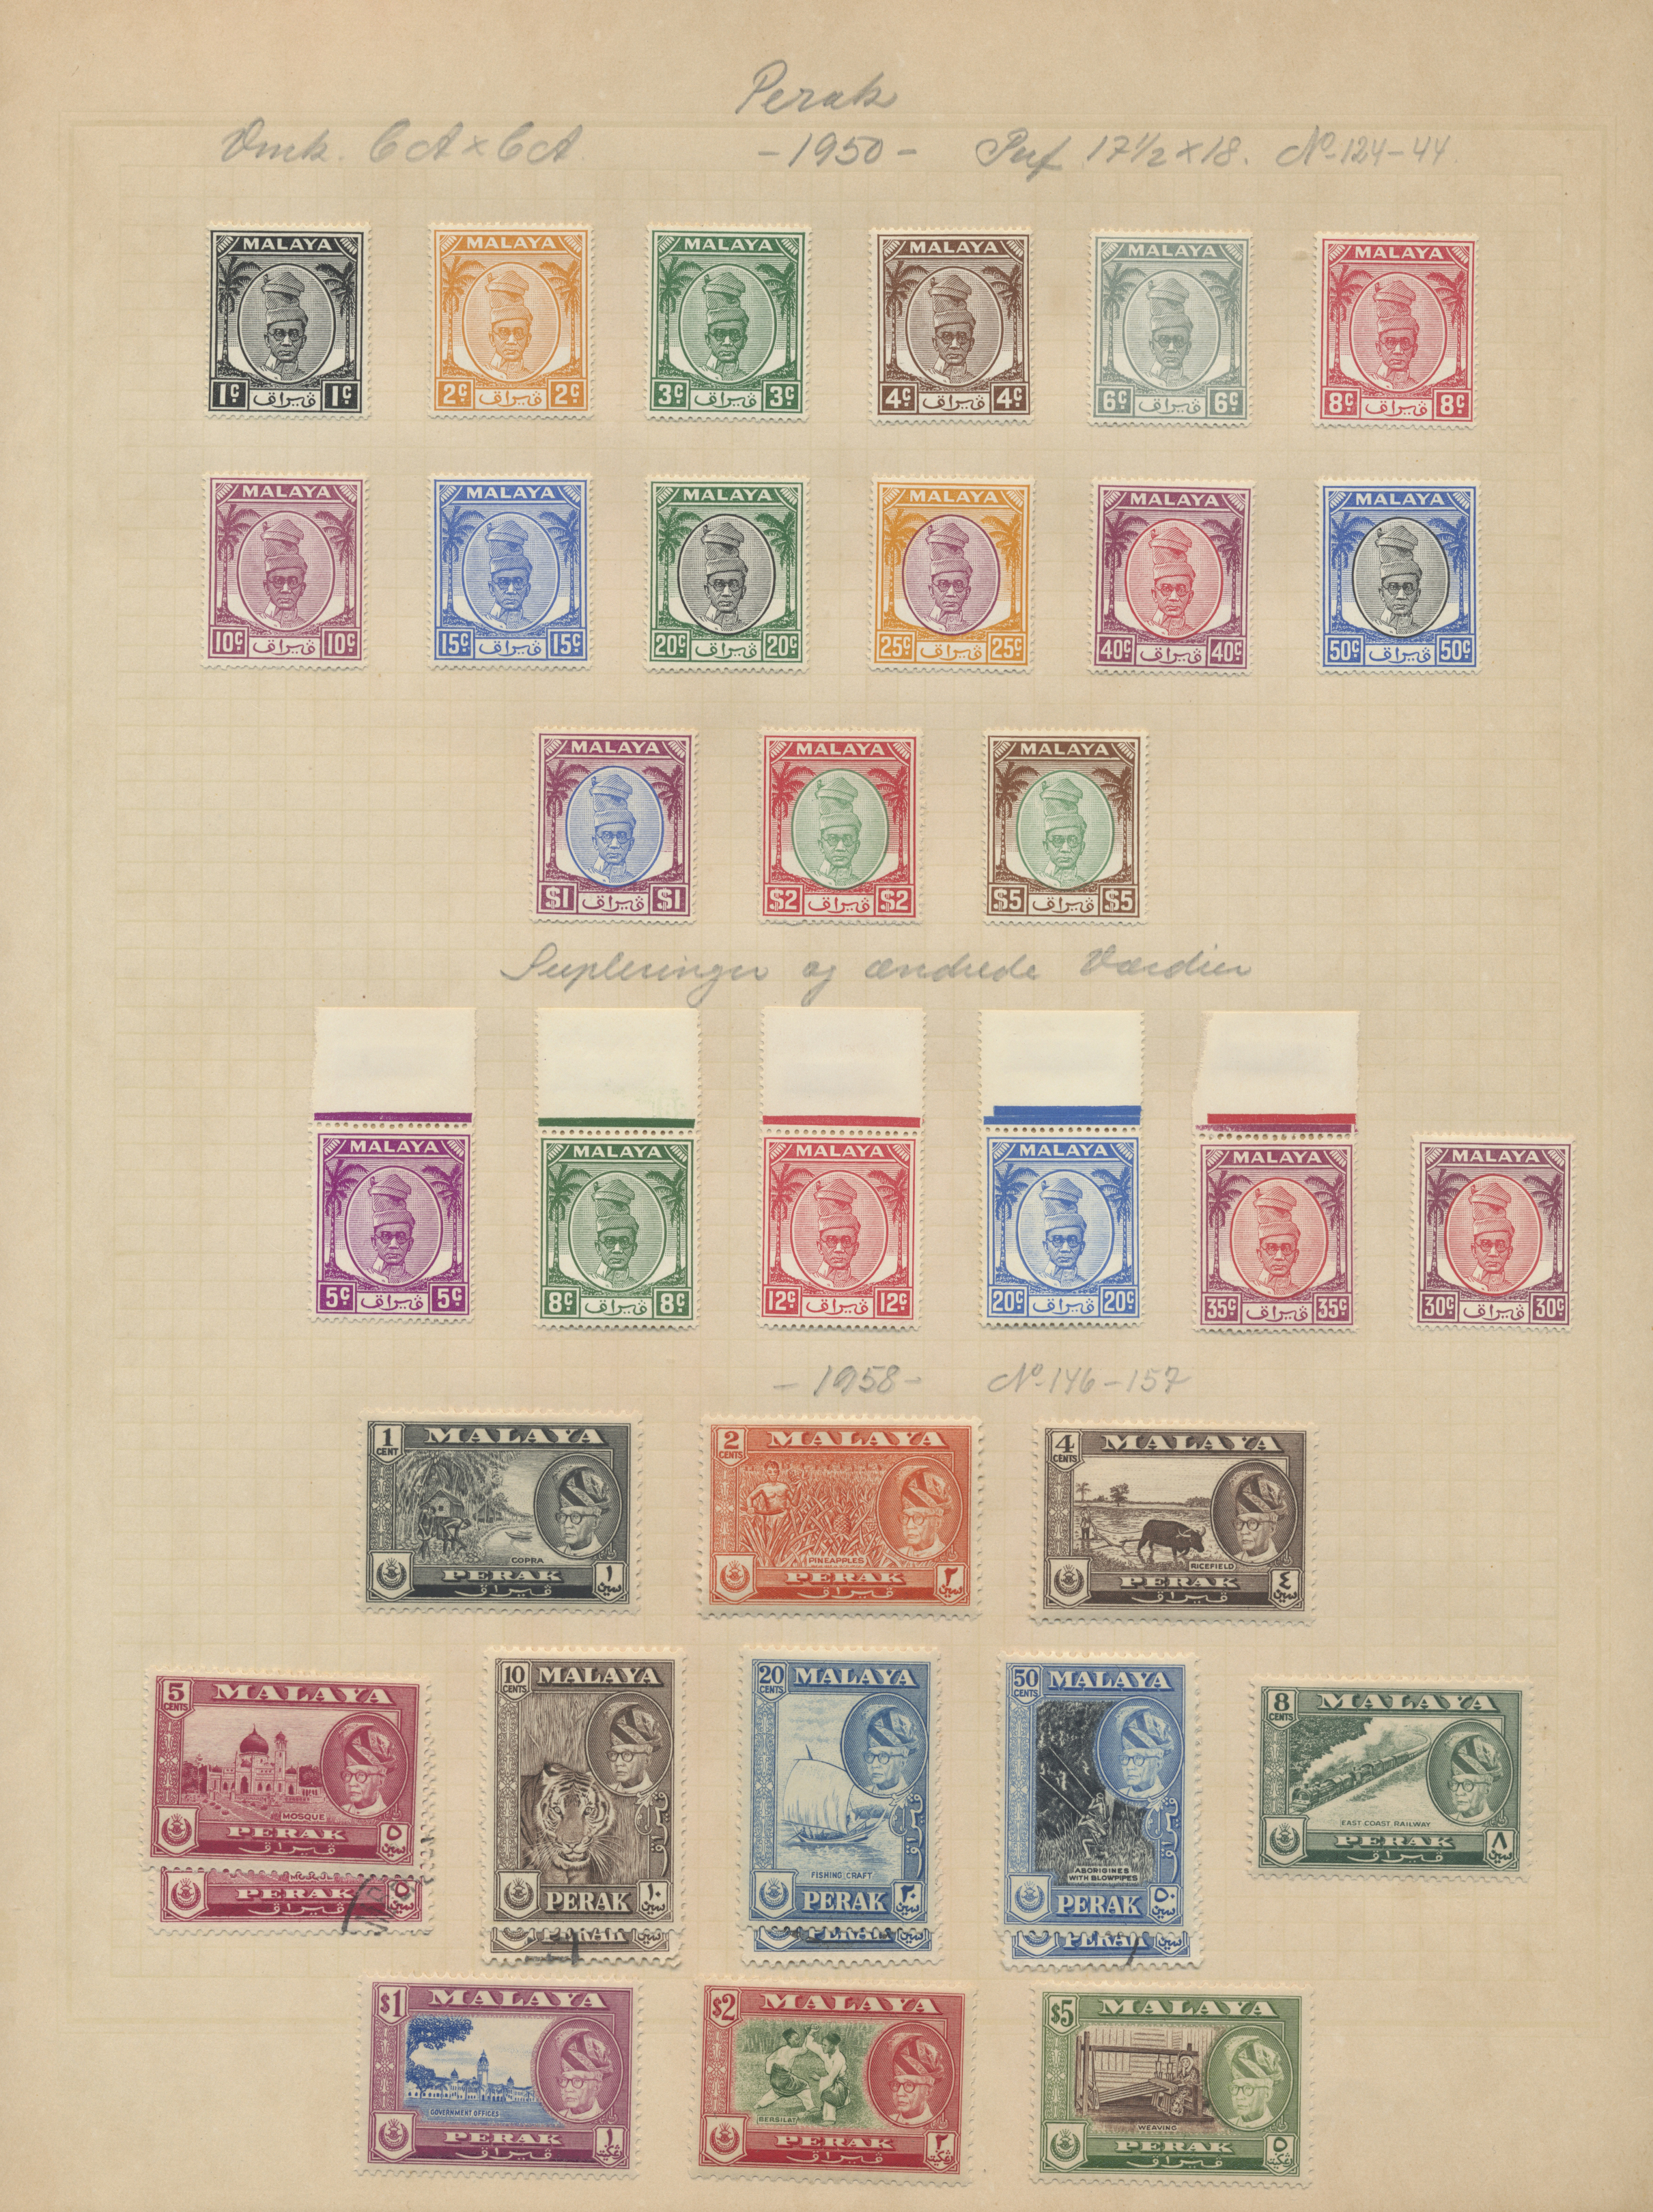 Lot 14015 - Malaiische Staaten - Perak  -  Auktionshaus Christoph Gärtner GmbH & Co. KG Sale #48 collections Overseas  Airmail / Ship mail & Thematics